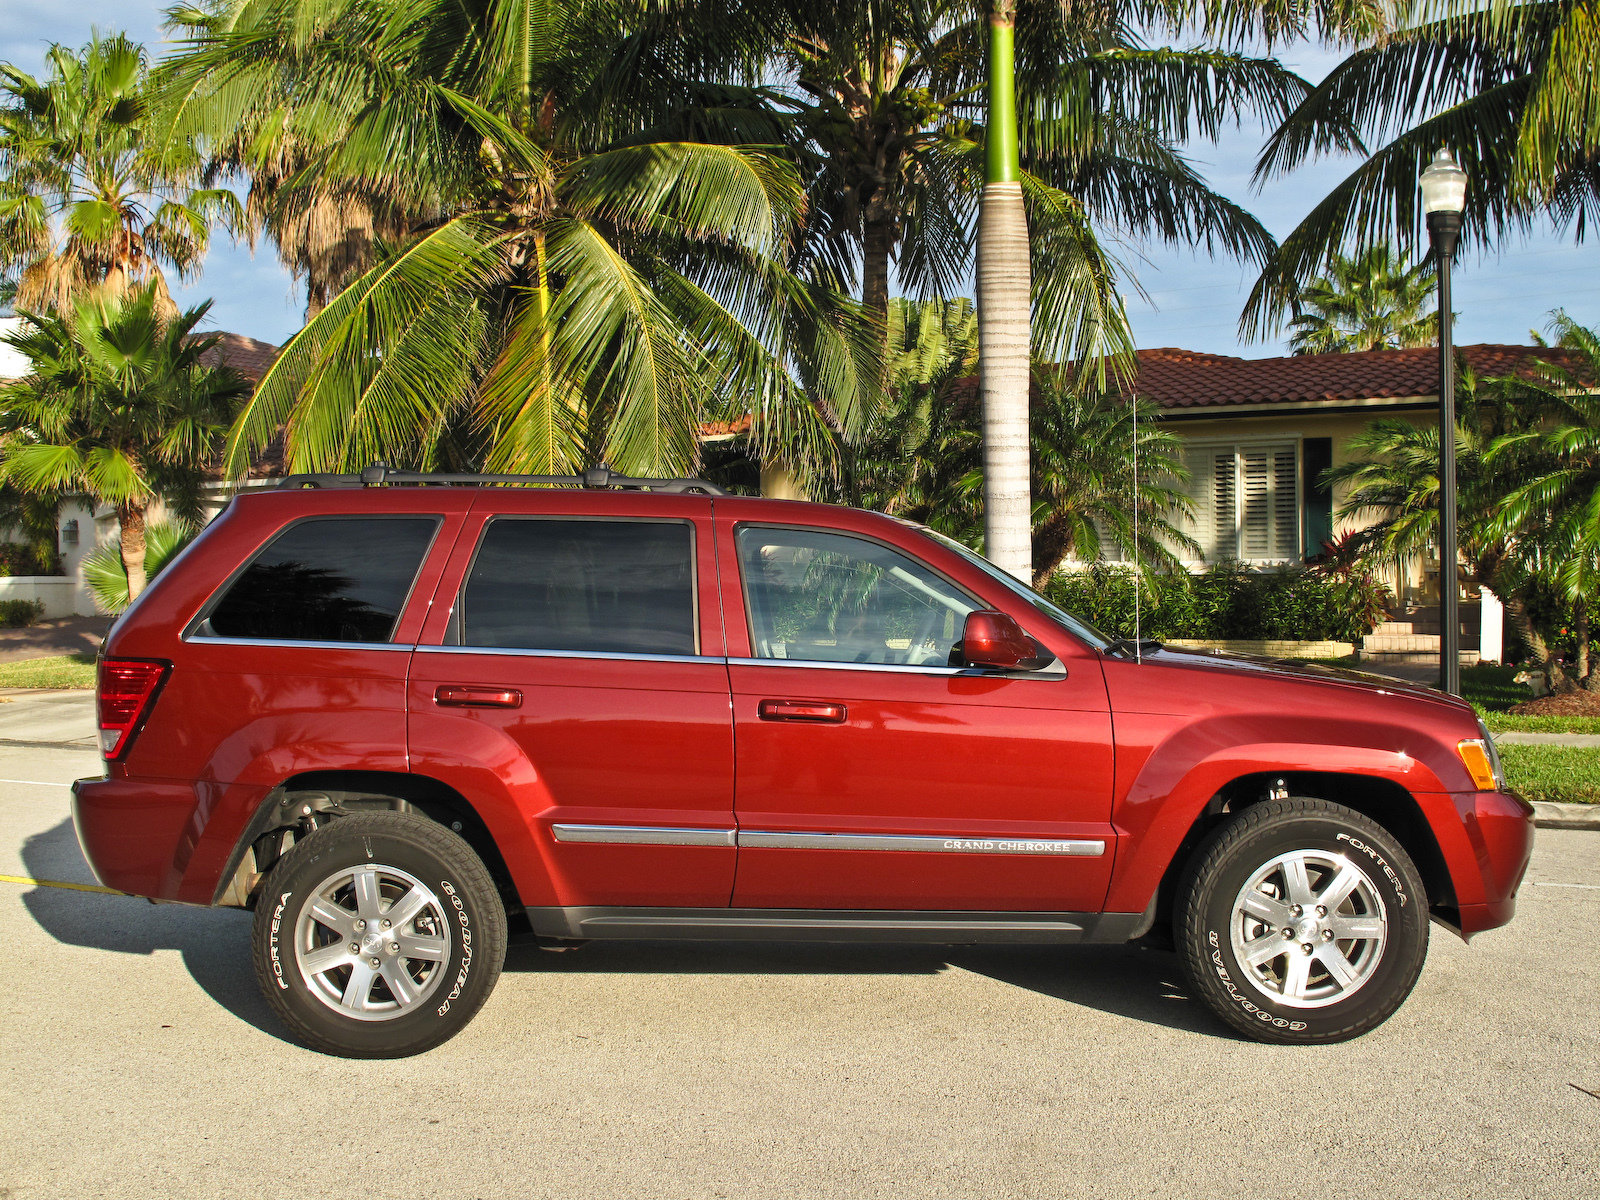 2008 jeep grand cherokee limited 4x4 diesel picture 284848 car review top speed. Black Bedroom Furniture Sets. Home Design Ideas